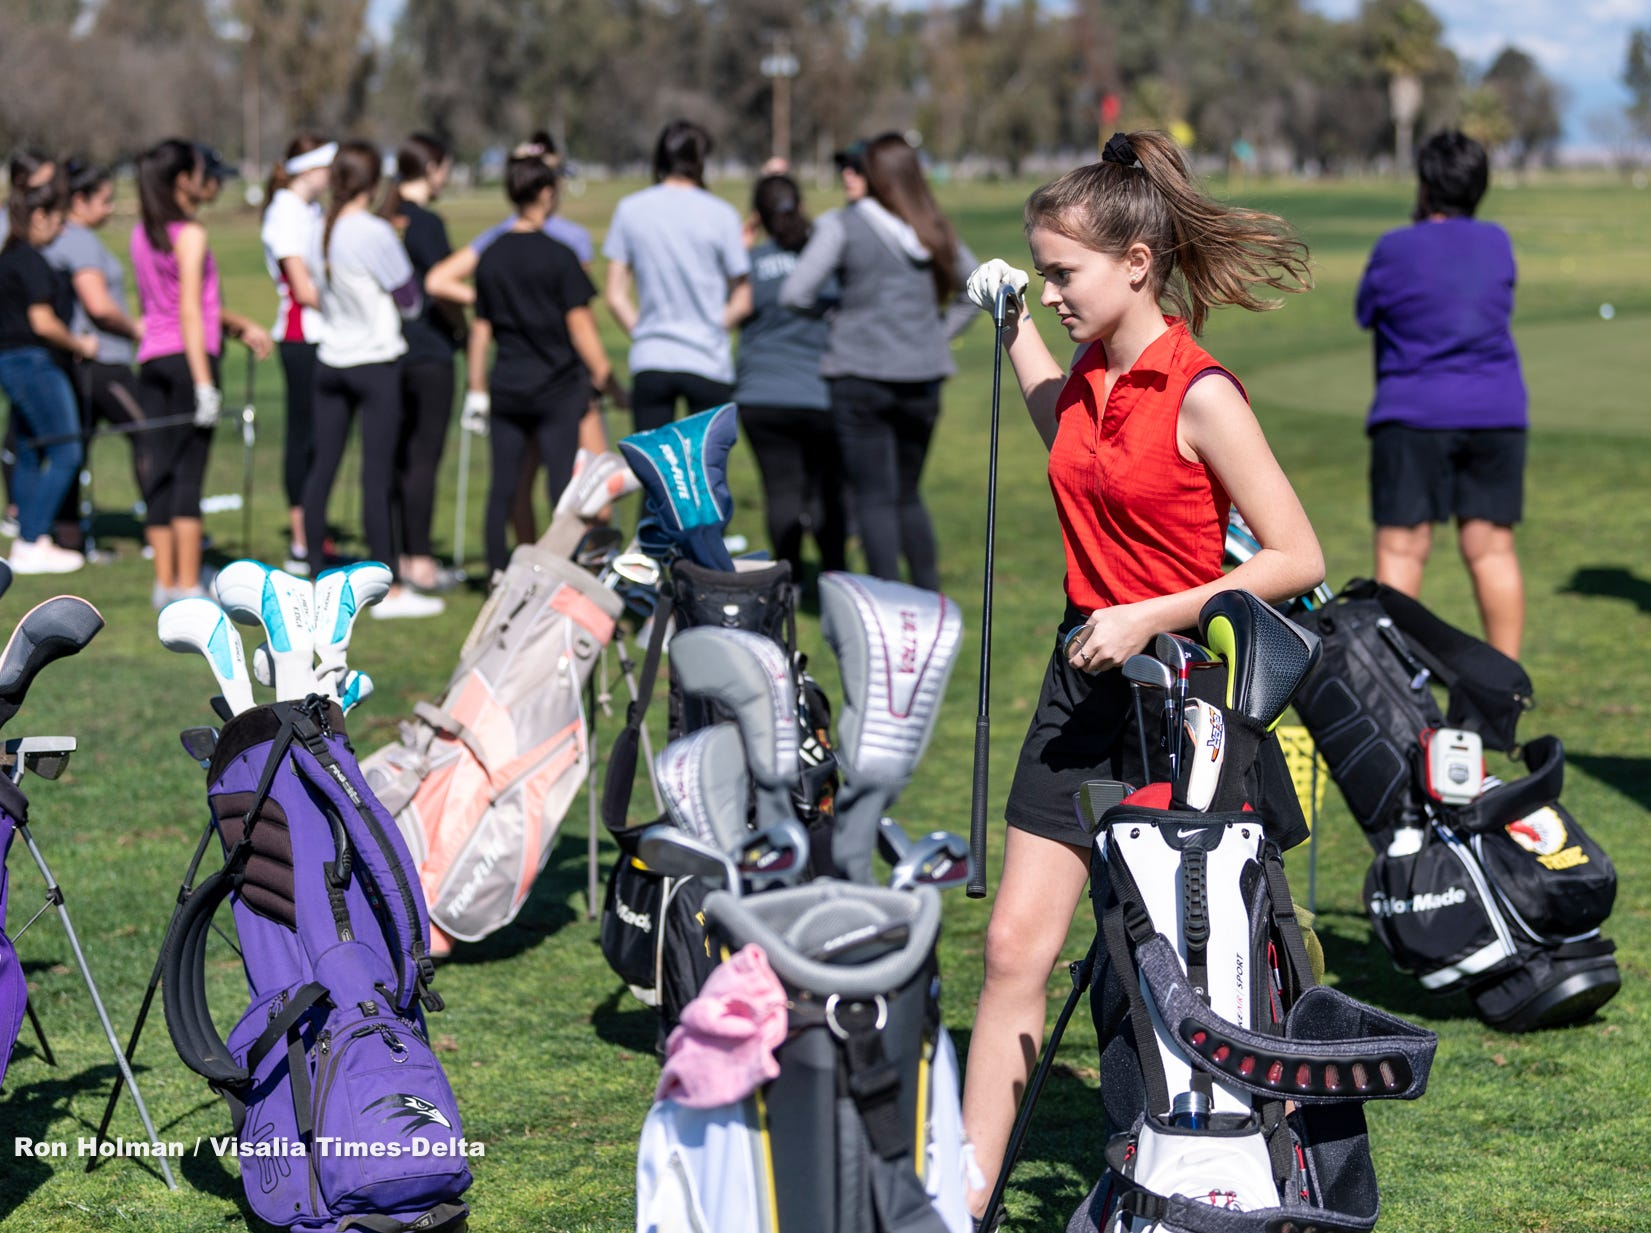 Mt. Whitney's Chloe Jennings selects a club as training professionals from Backswing Golf Events and Fresno State women's golf coaches work with female golfers of all ages on Thursday, February 28, 2019. Organizers held the free event at the Tulare Golf Course to help grow the game of golf in the Central Valley.